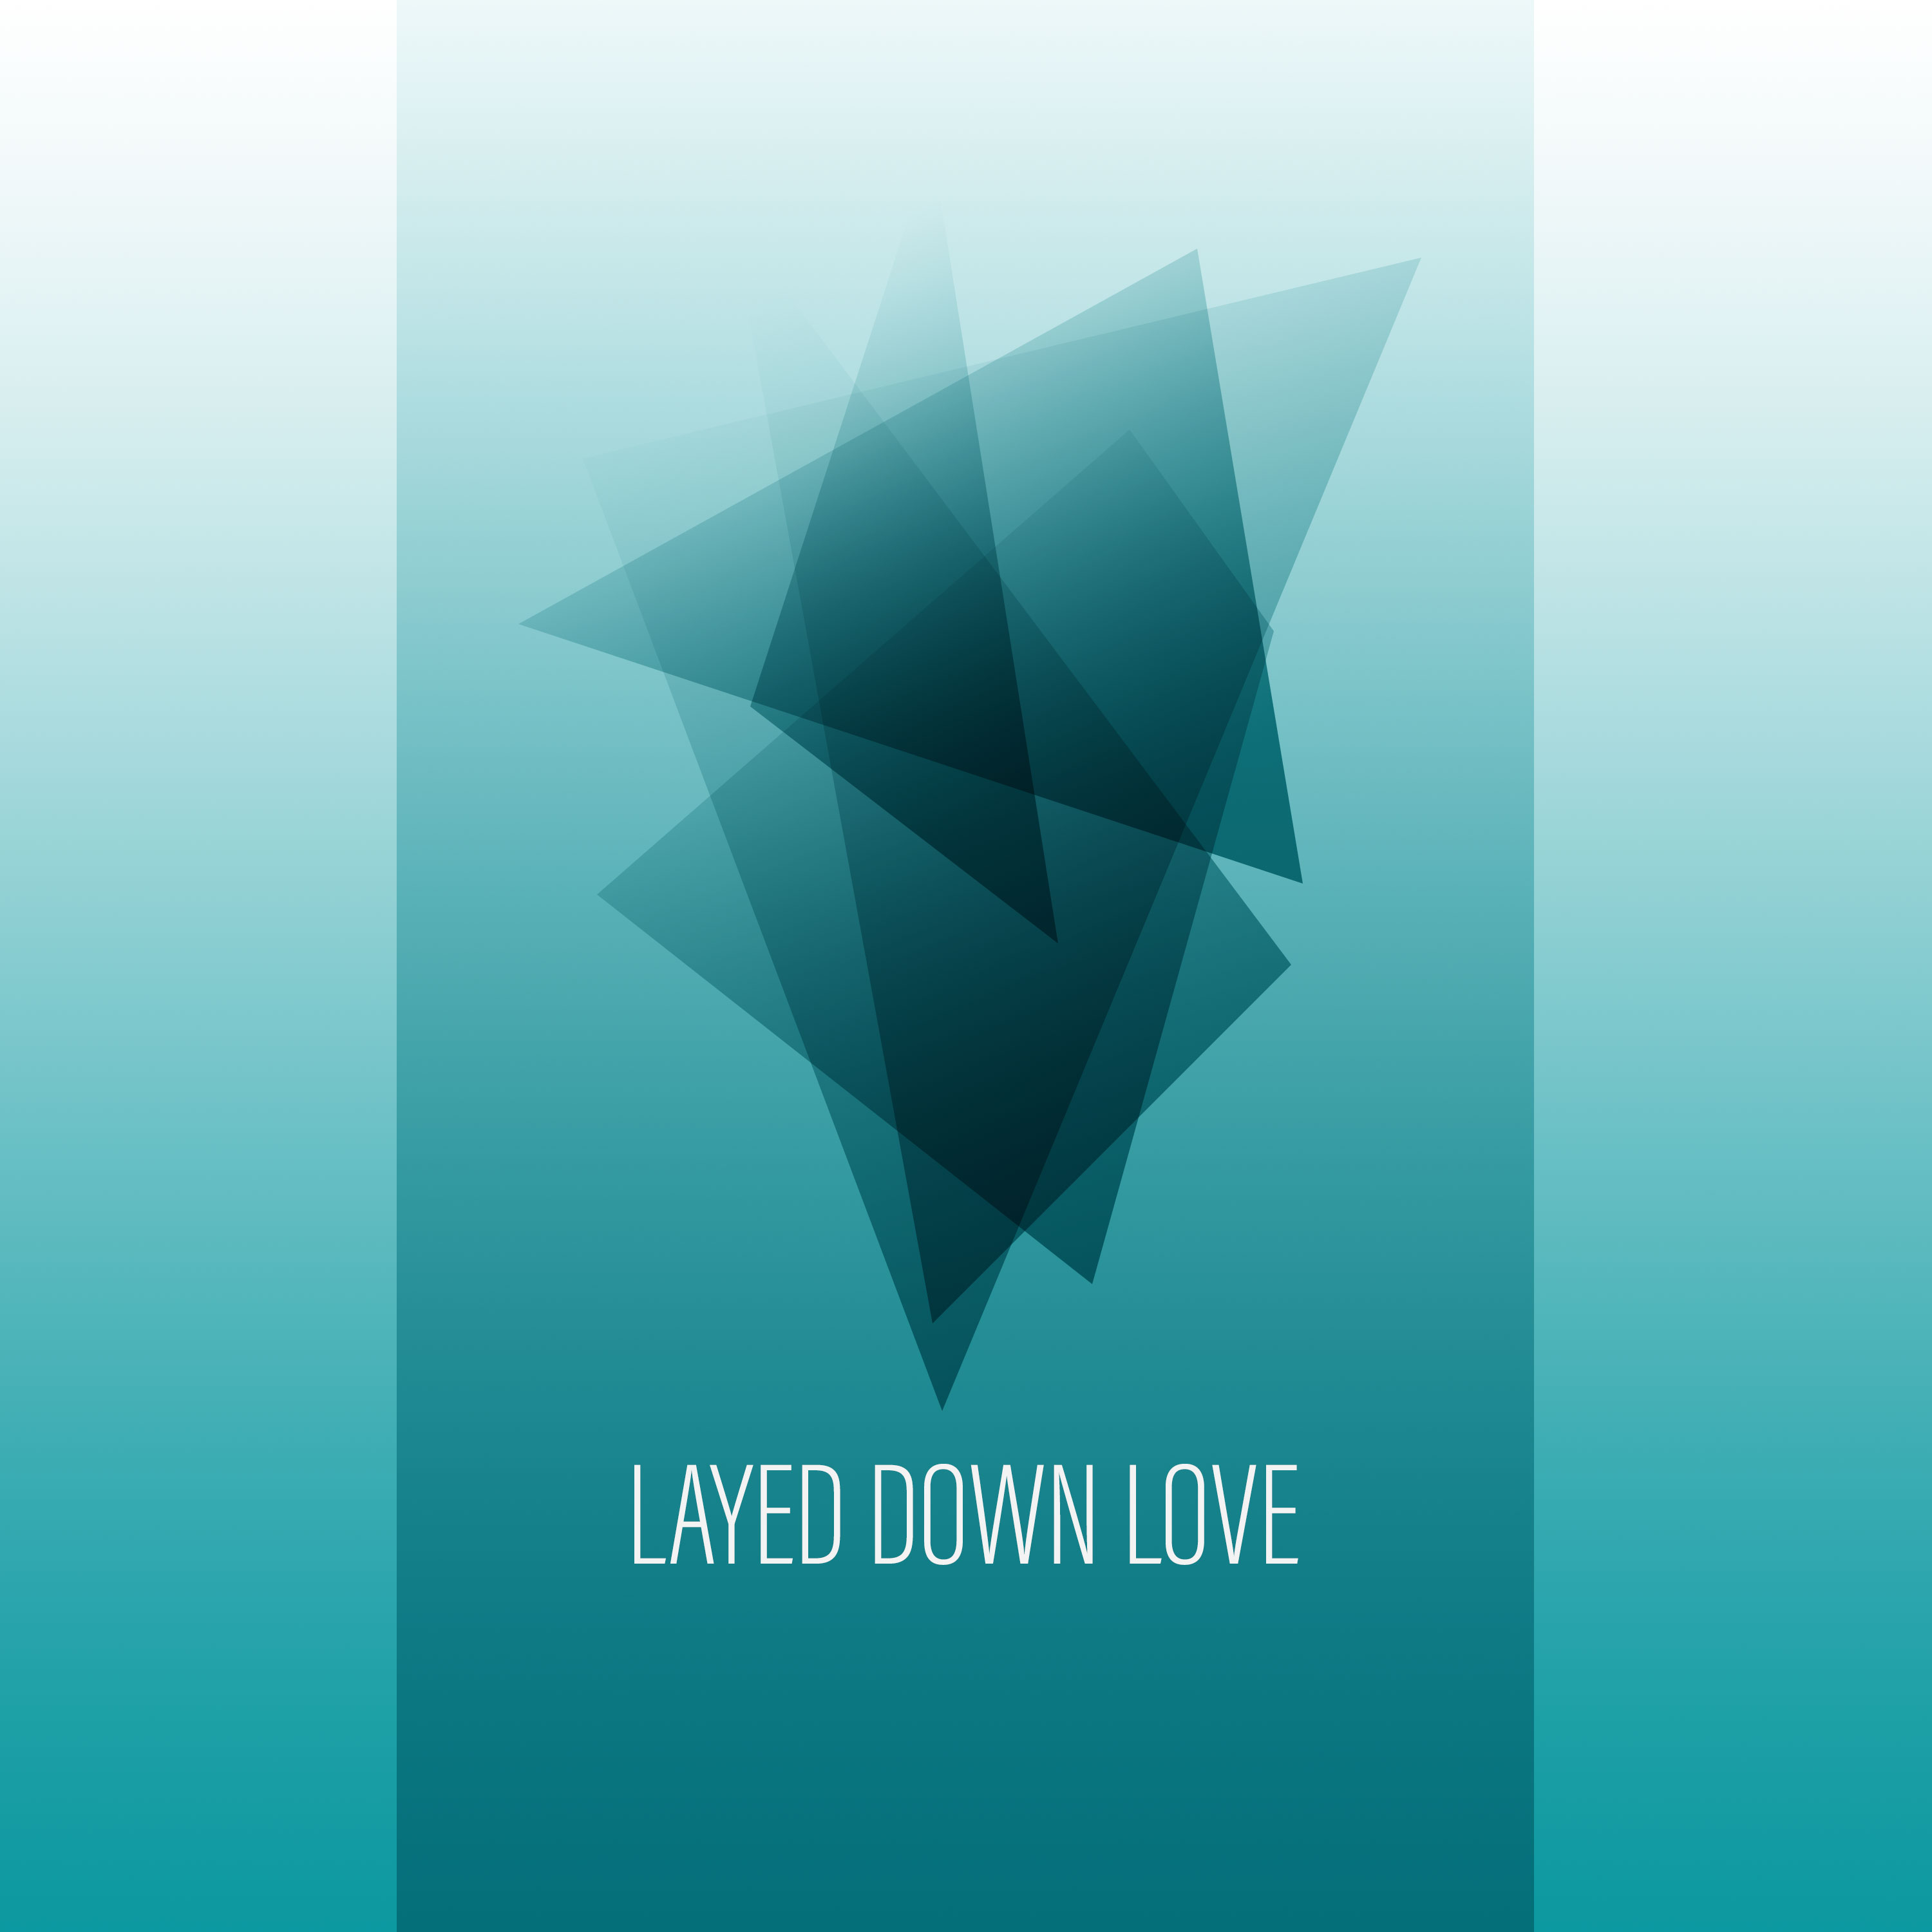 Layed down love